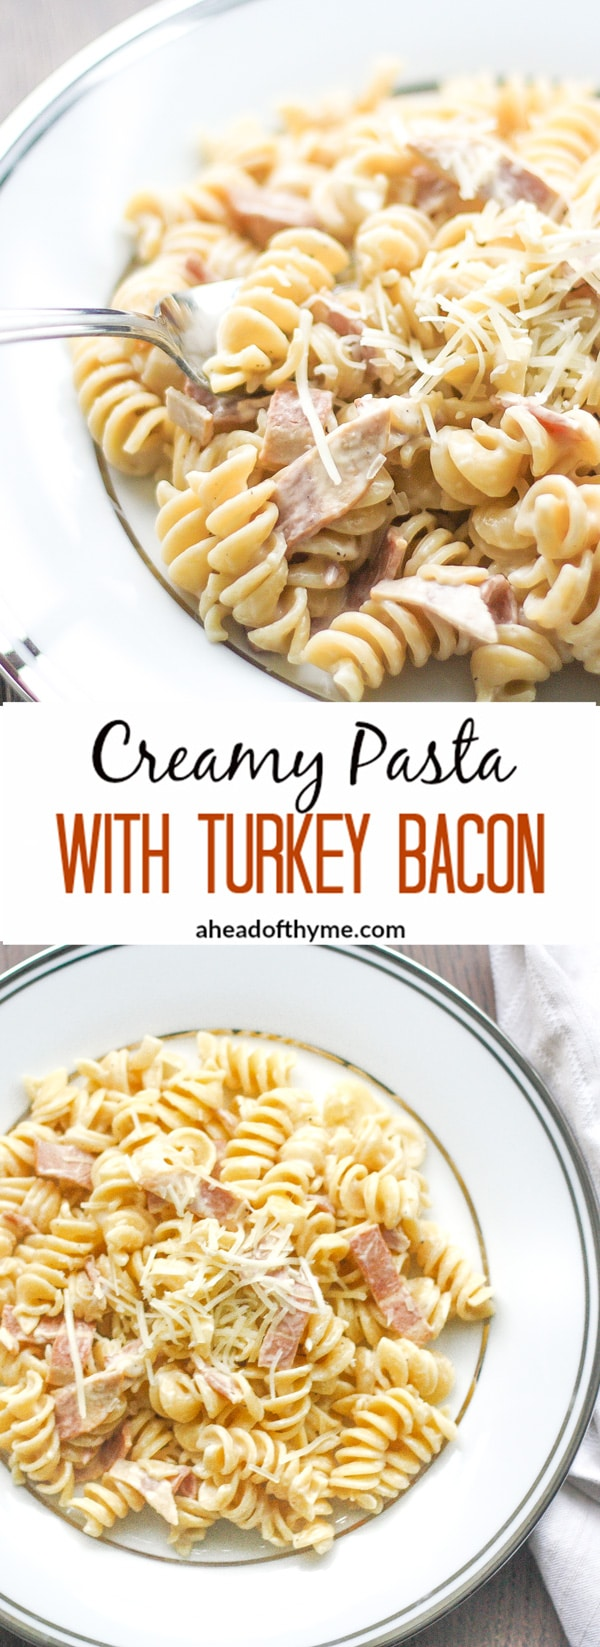 Creamy Pasta with Turkey Bacon: This delicious, smooth and creamy pasta is loaded with cheese and turkey bacon to yield the ultimate comfort food | aheadofthyme.com